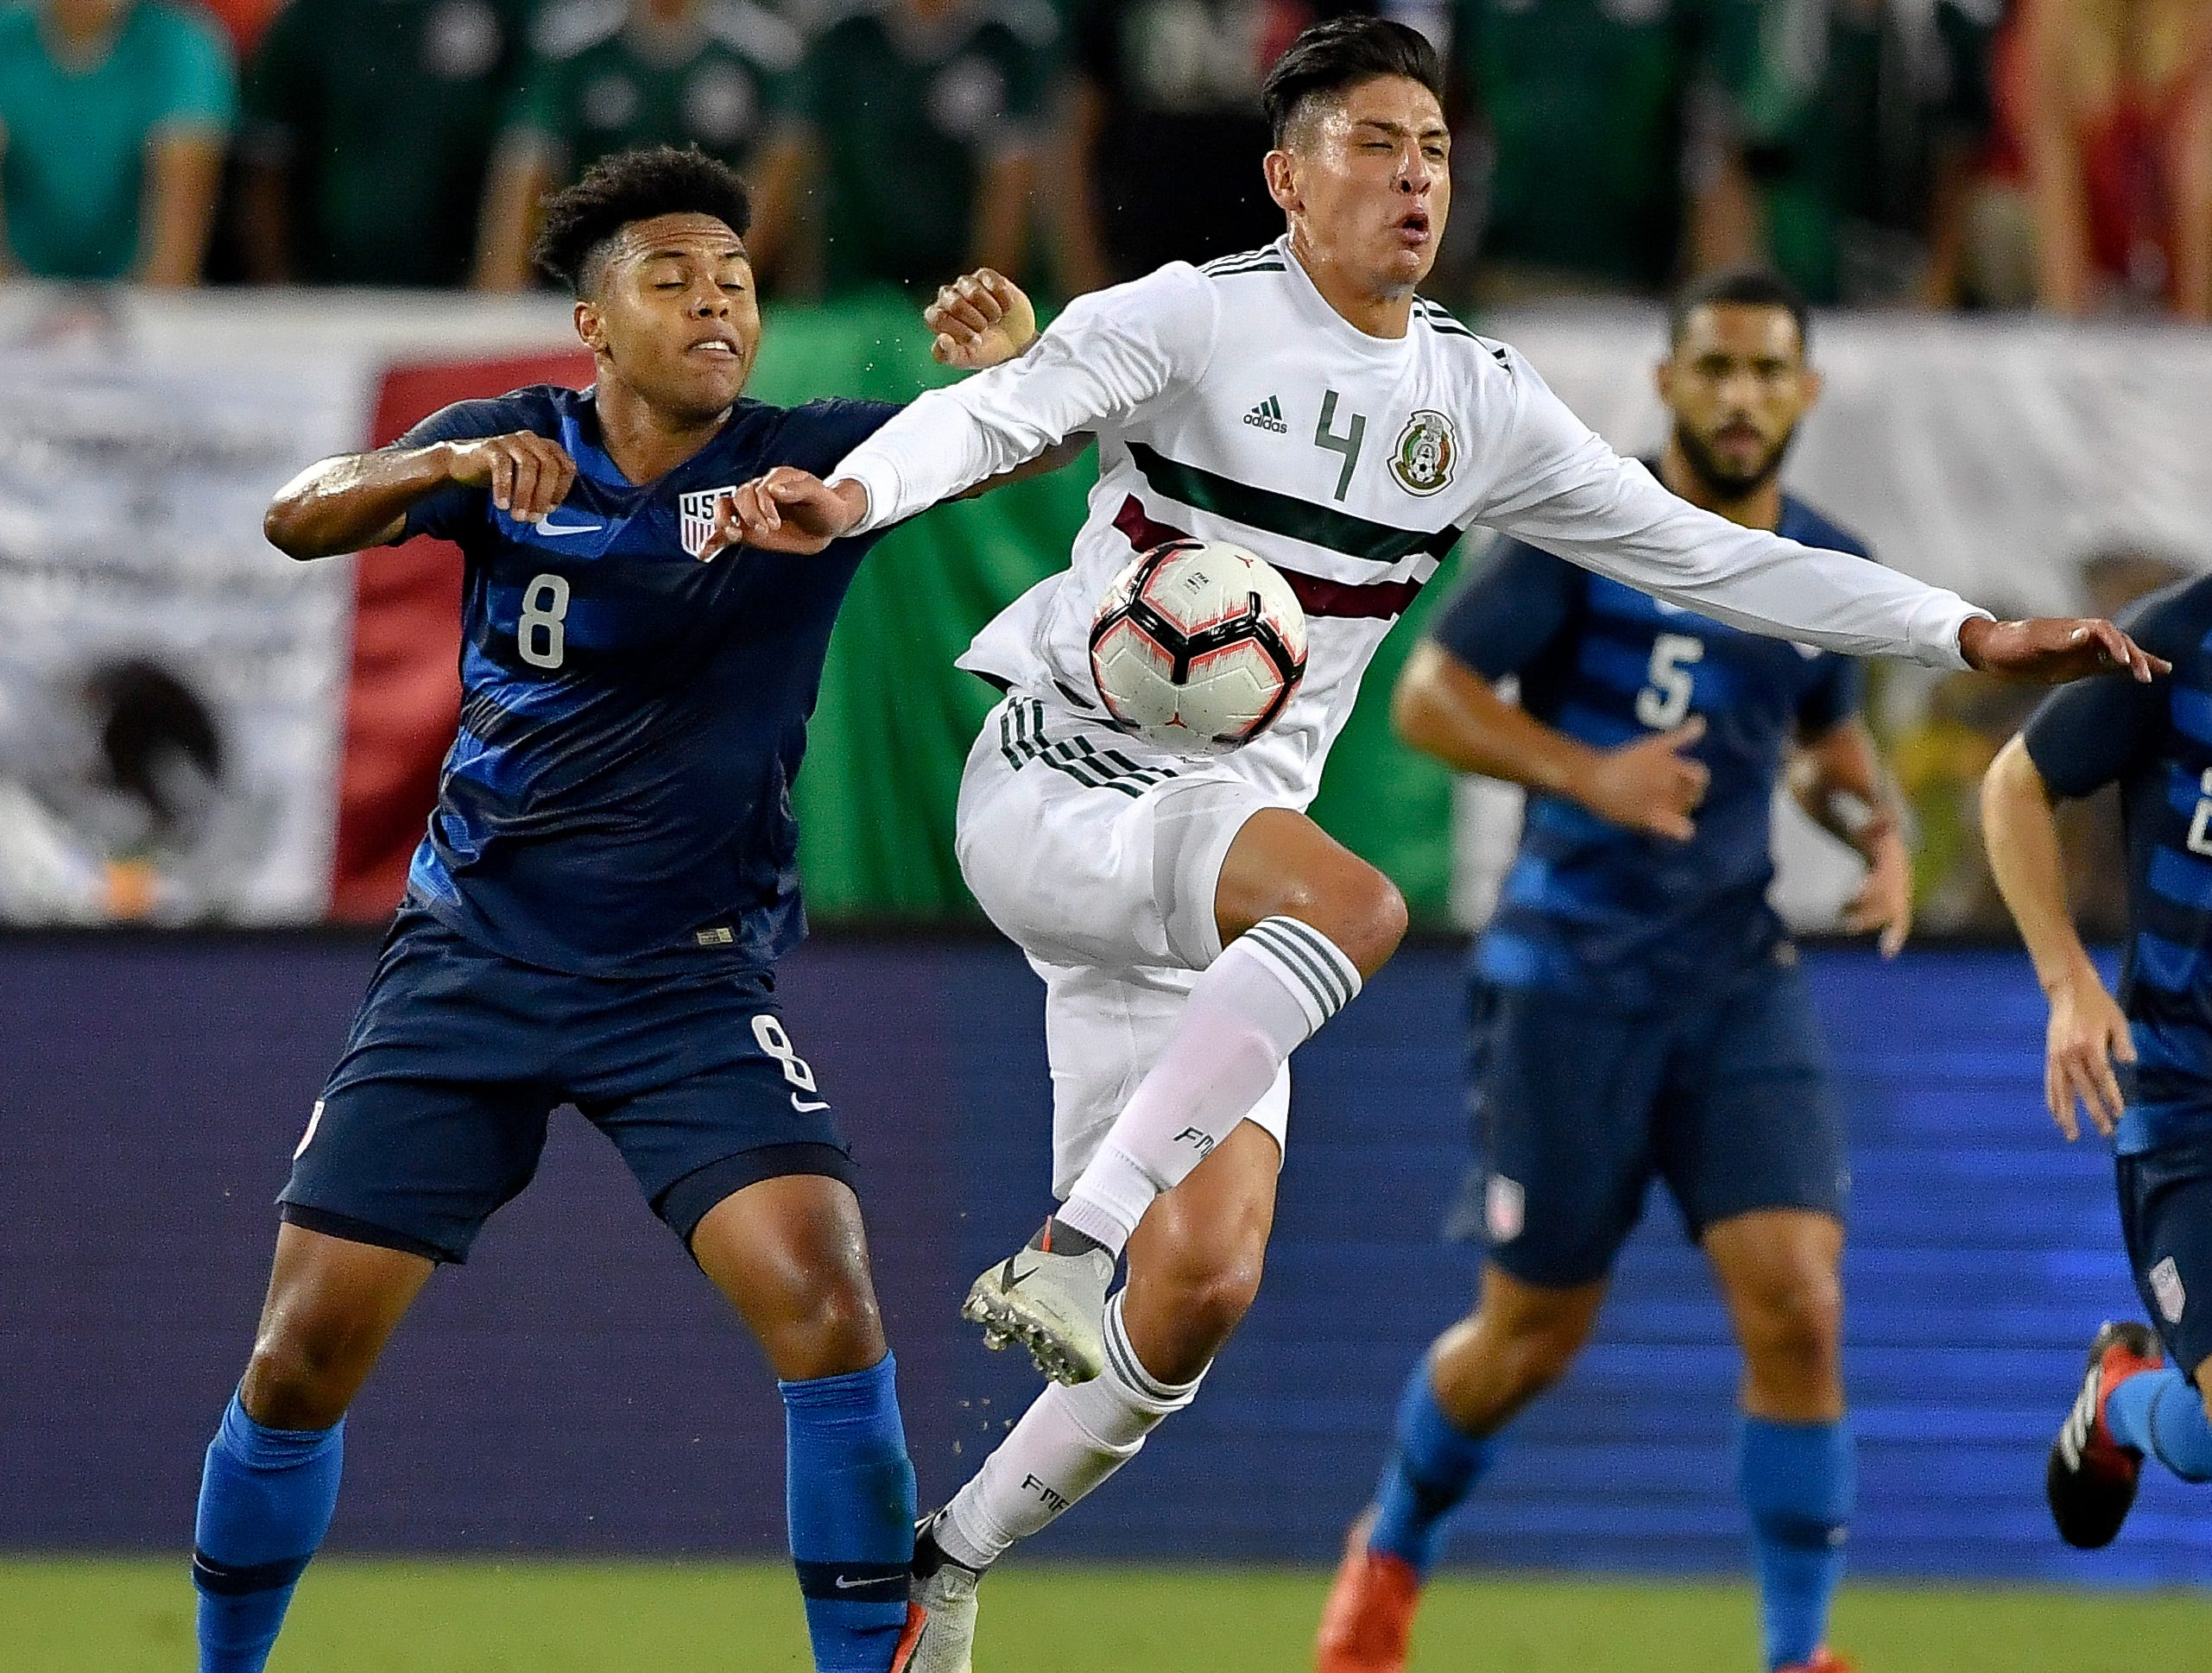 Mexico defender Edson Alvarez (4) jumps for the ball in front of USA midfielder Weston McKennie (8) during the first half at Nissan Stadium in Nashville, Tenn., Tuesday, Sept. 11, 2018.